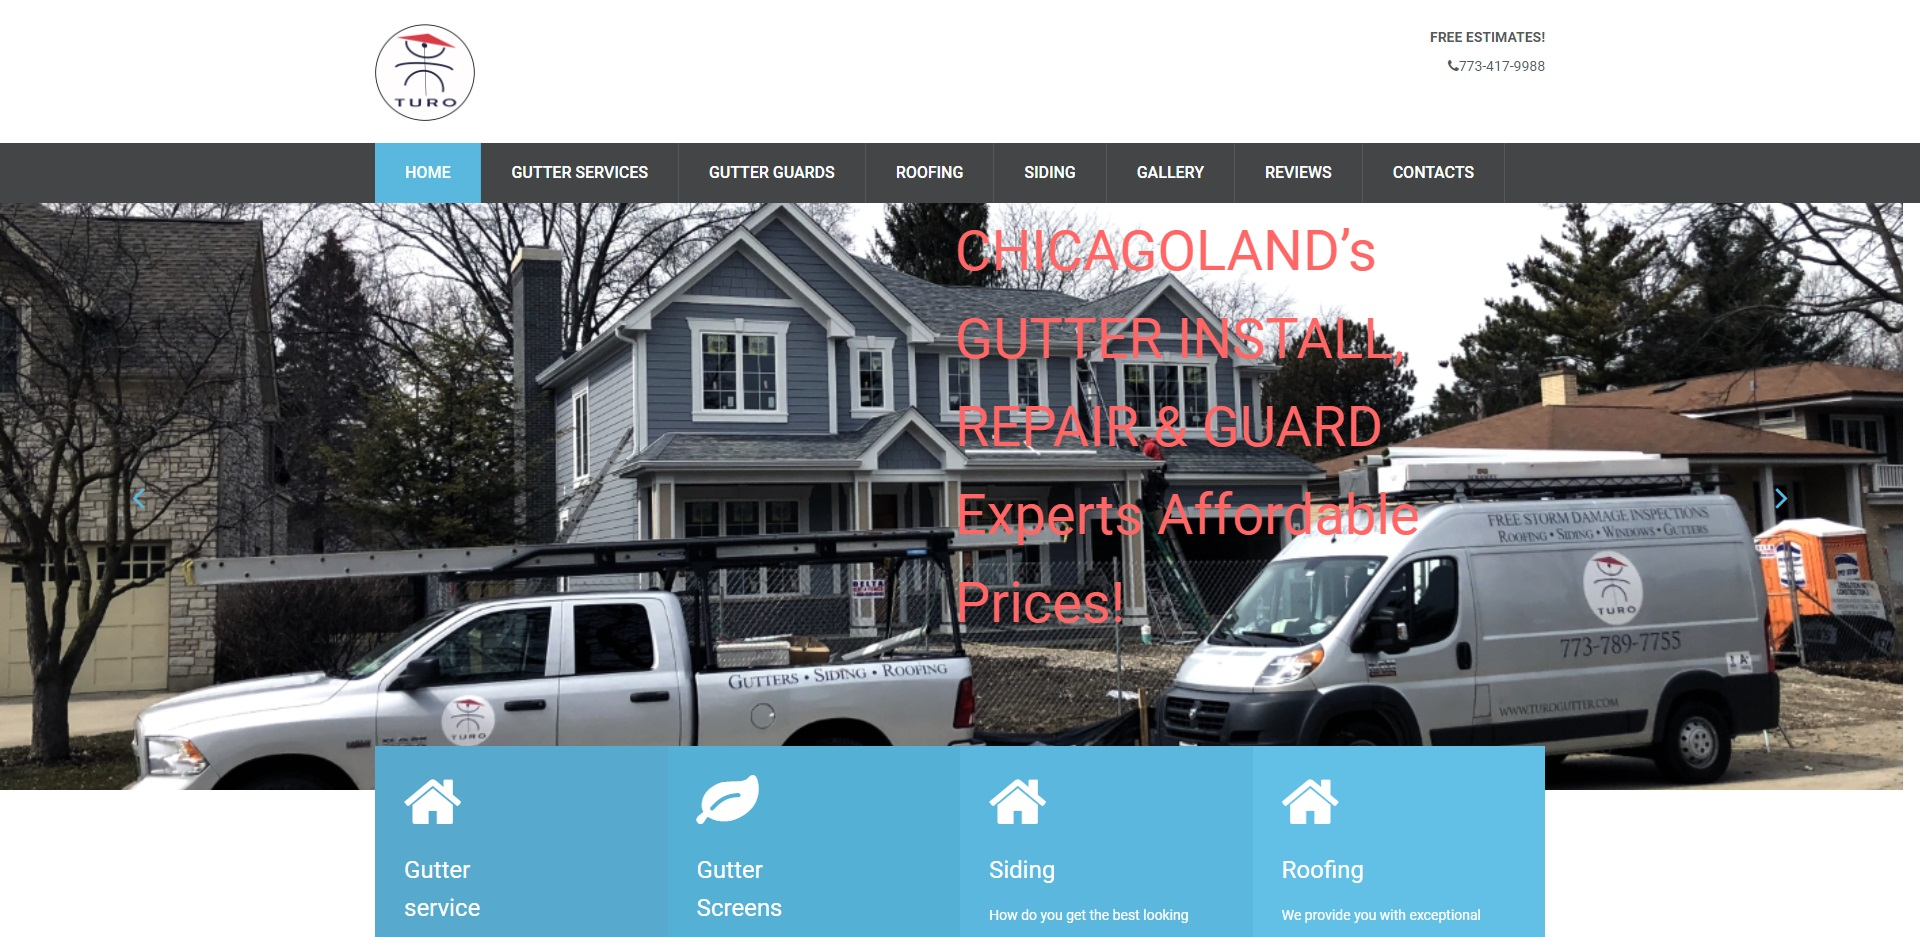 The Best Gutter Installers in Chicago